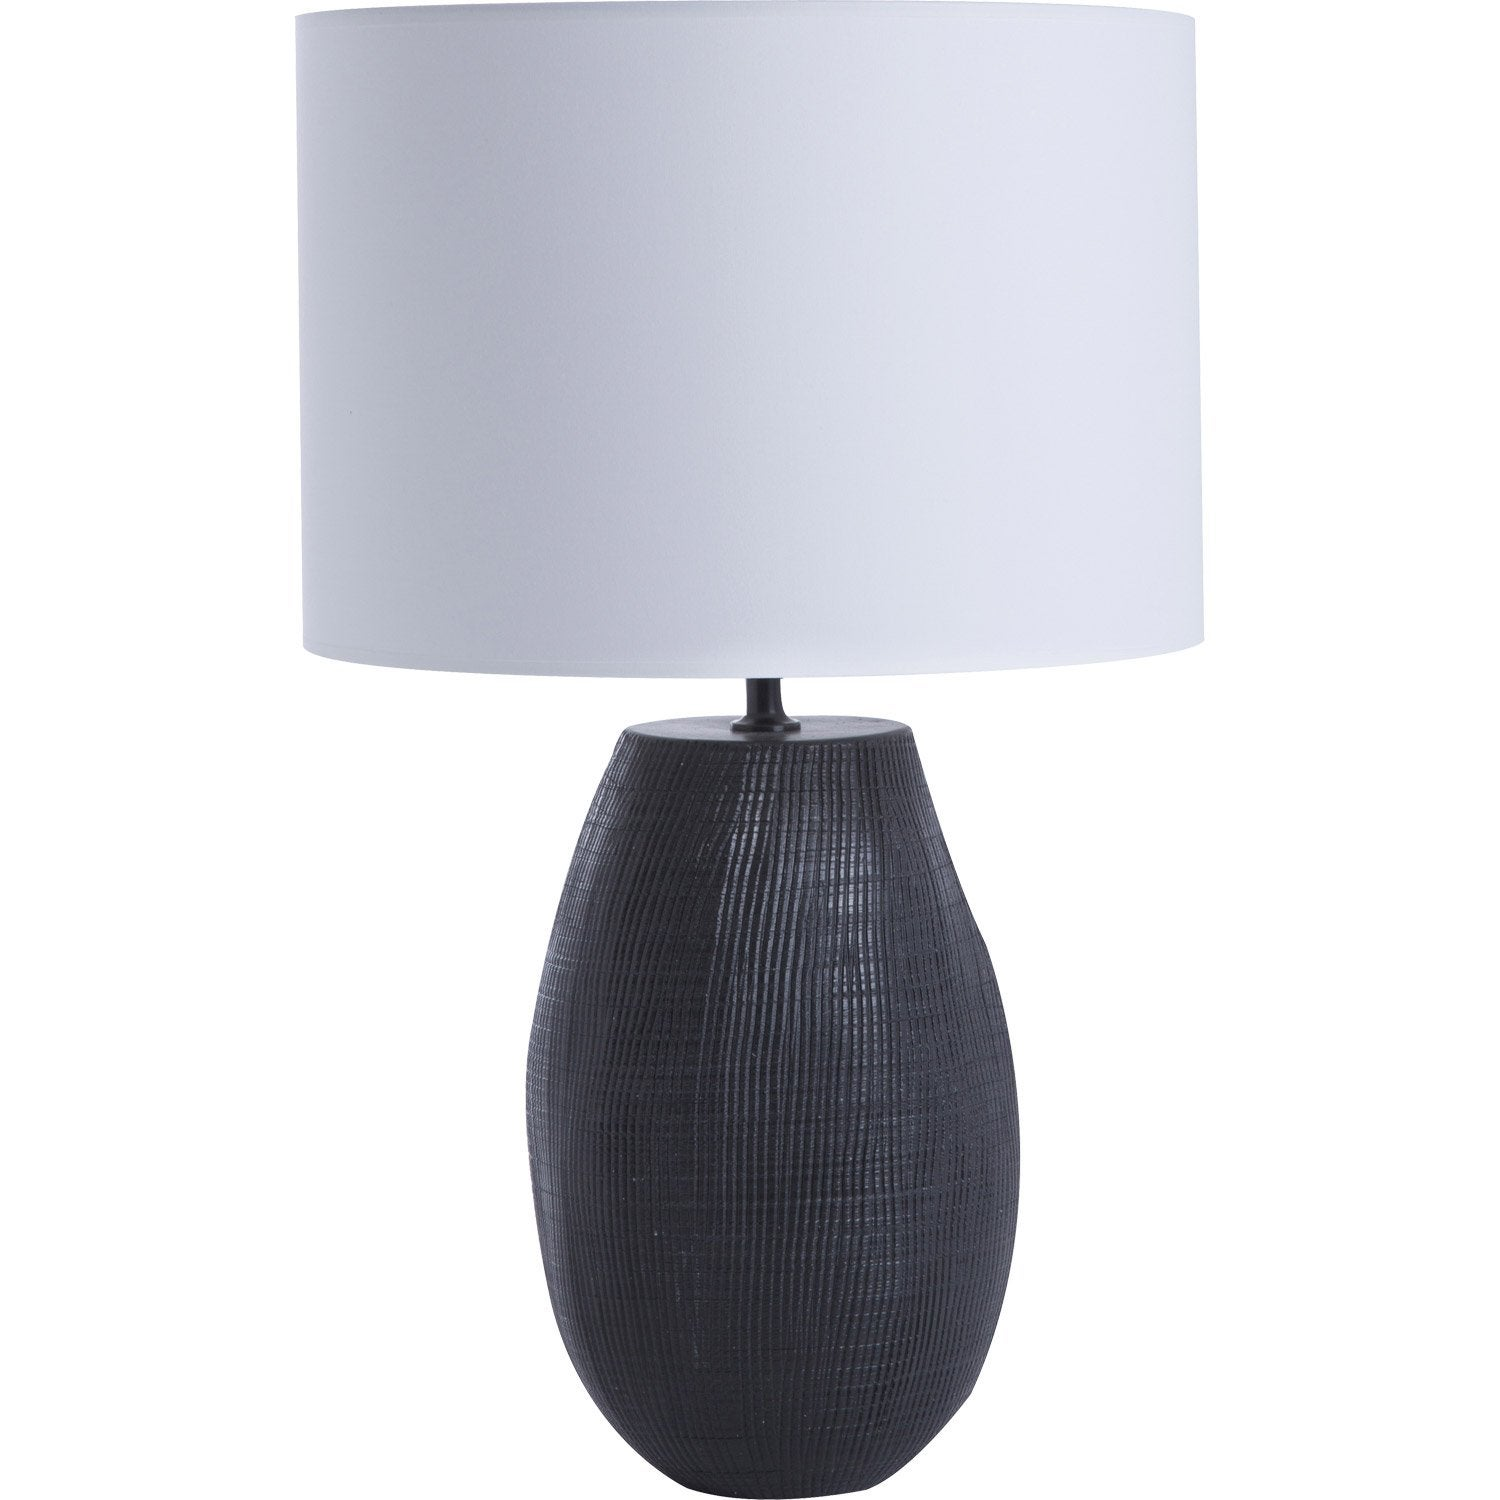 lampe e27 terra coton blanc 60 w leroy merlin. Black Bedroom Furniture Sets. Home Design Ideas